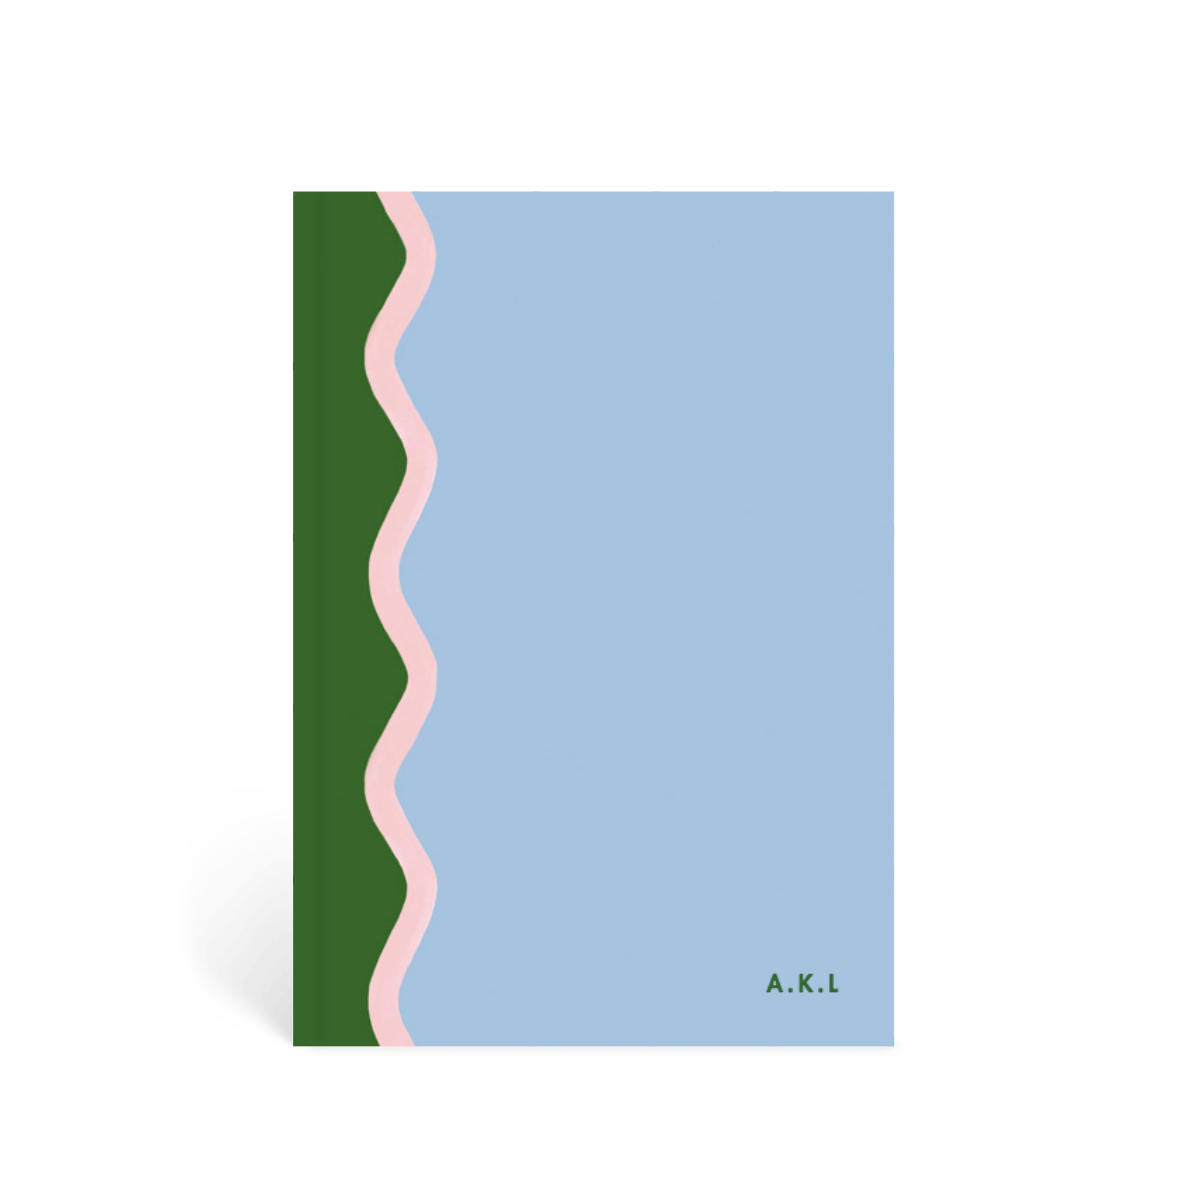 Https%3a%2f%2fwww.papier.com%2fproduct image%2f75339%2f25%2fscallop spine 17656 front 1585308033.png?ixlib=rb 1.1